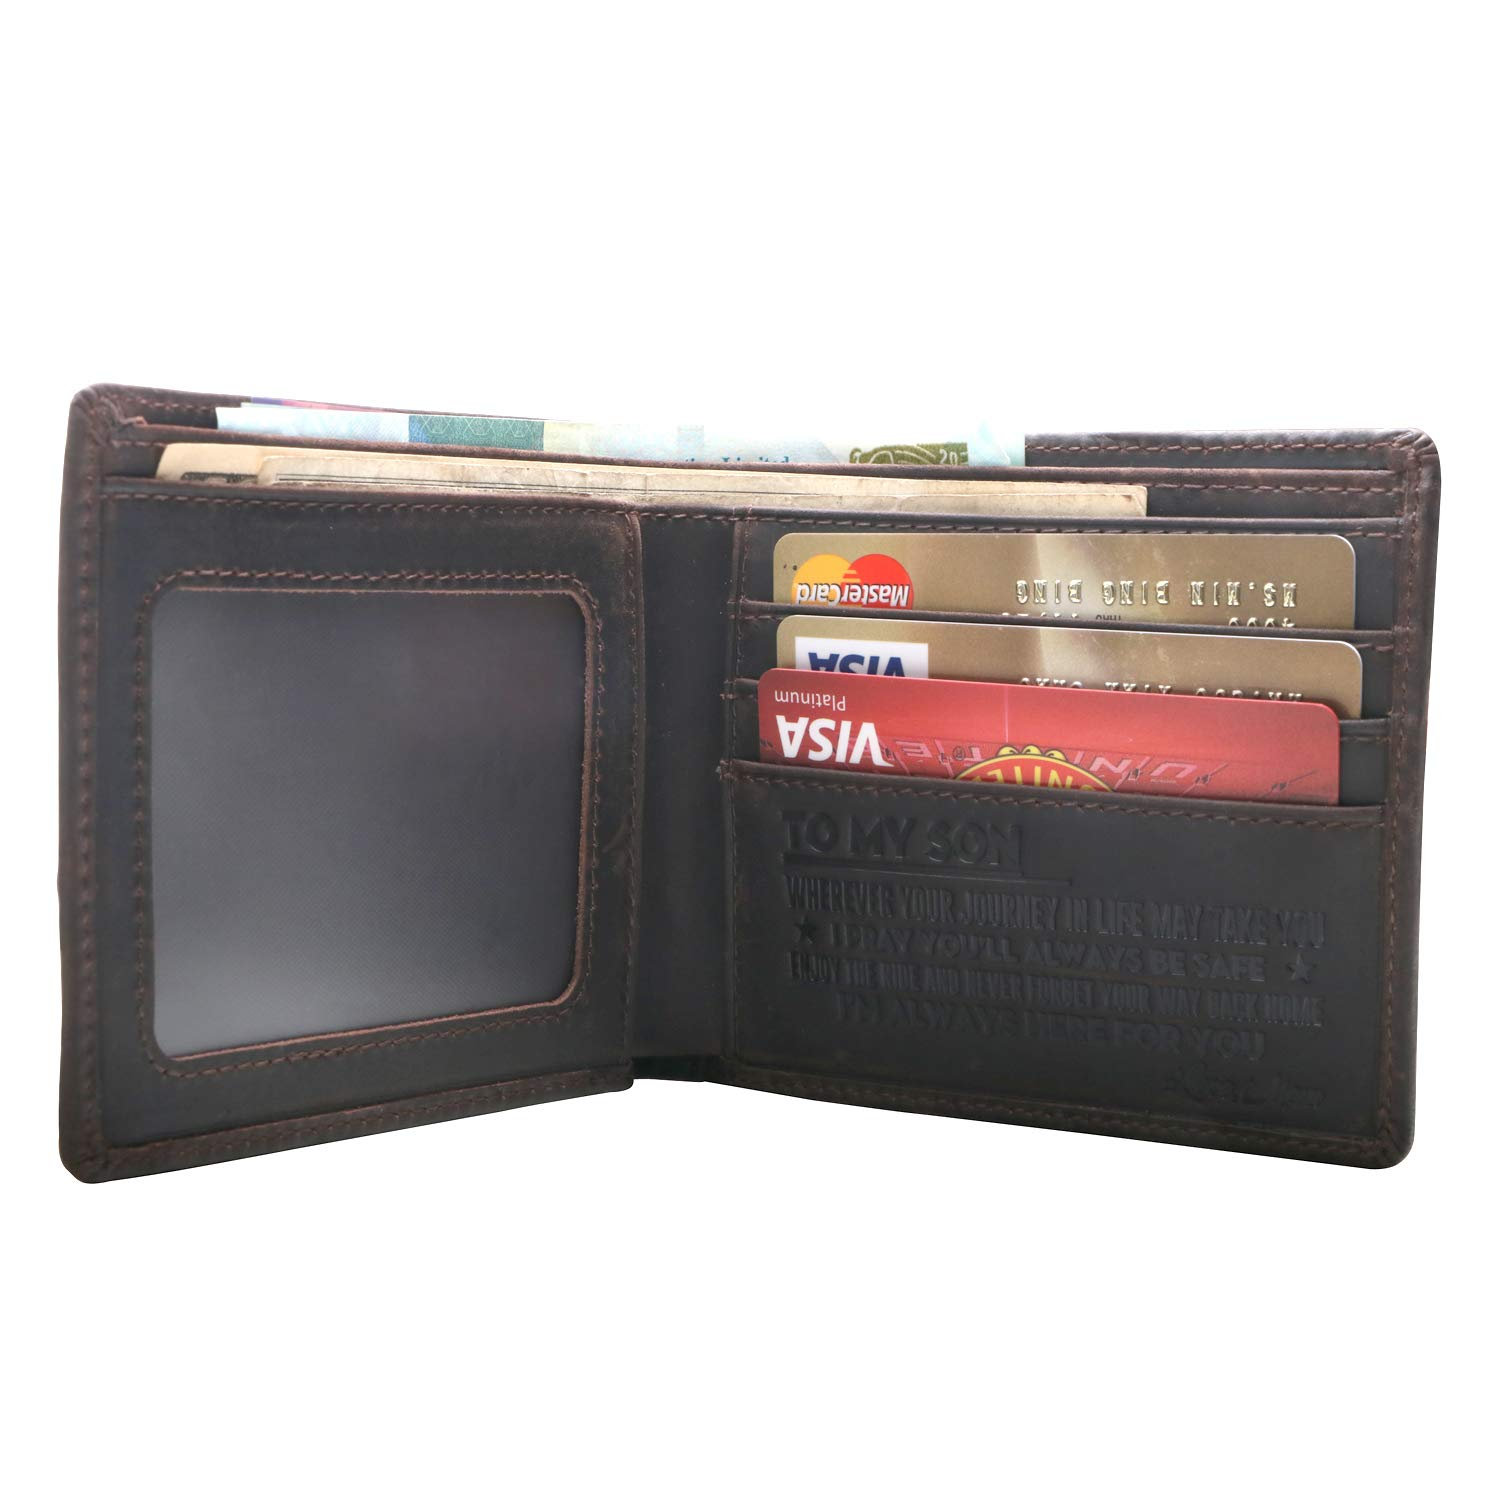 Mens Wallet -Minimalist Leather Wallets,Best Gift for your son on Birthday,Christmas Day. (1 PIECE)